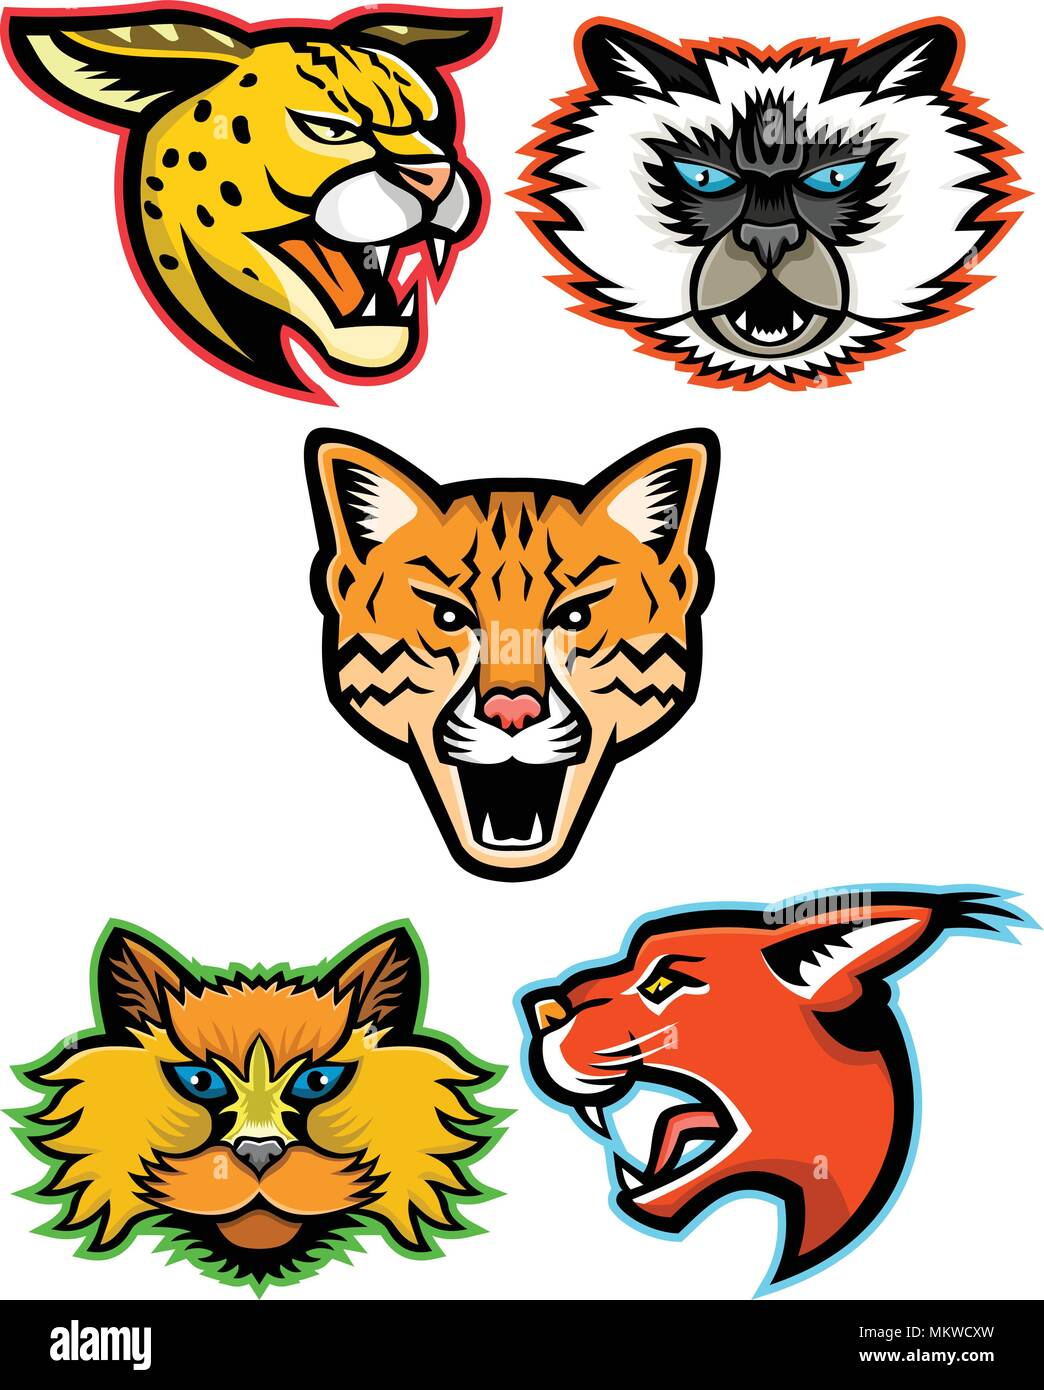 Sports mascot icon set of heads of wild and domestic cats like the serval, Himalayan cat, ocelot, Selkirk Rex cat and the caracal cat  viewed from sid - Stock Vector